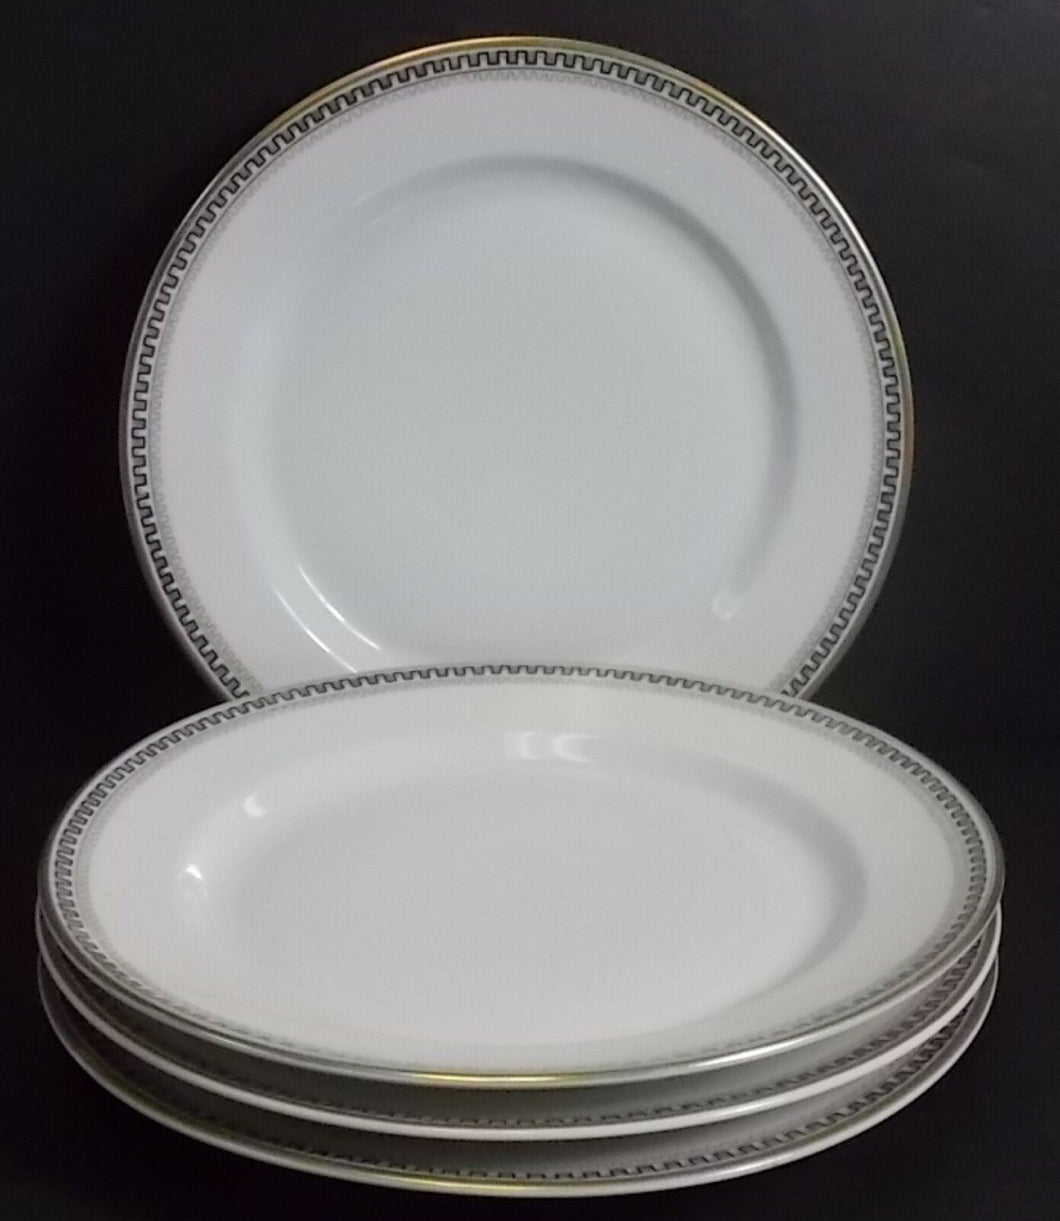 HEINRICH/H & C china HC17 Greek Key/Manchester Four (4) Salad Plates @ 7-3/4